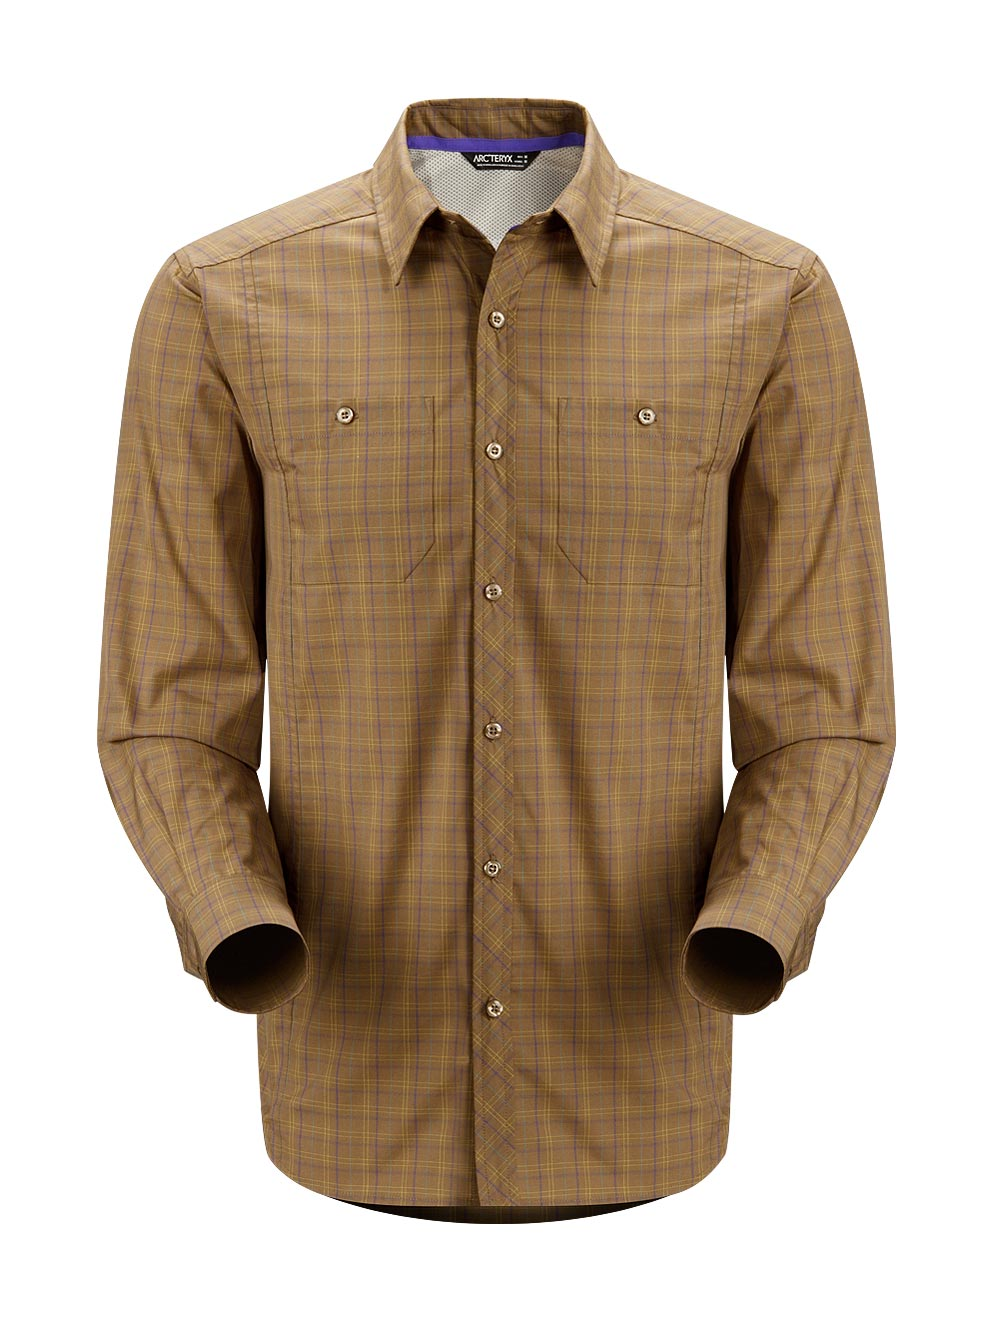 Arcteryx Nubian Brown Borderline Shirt LS - New